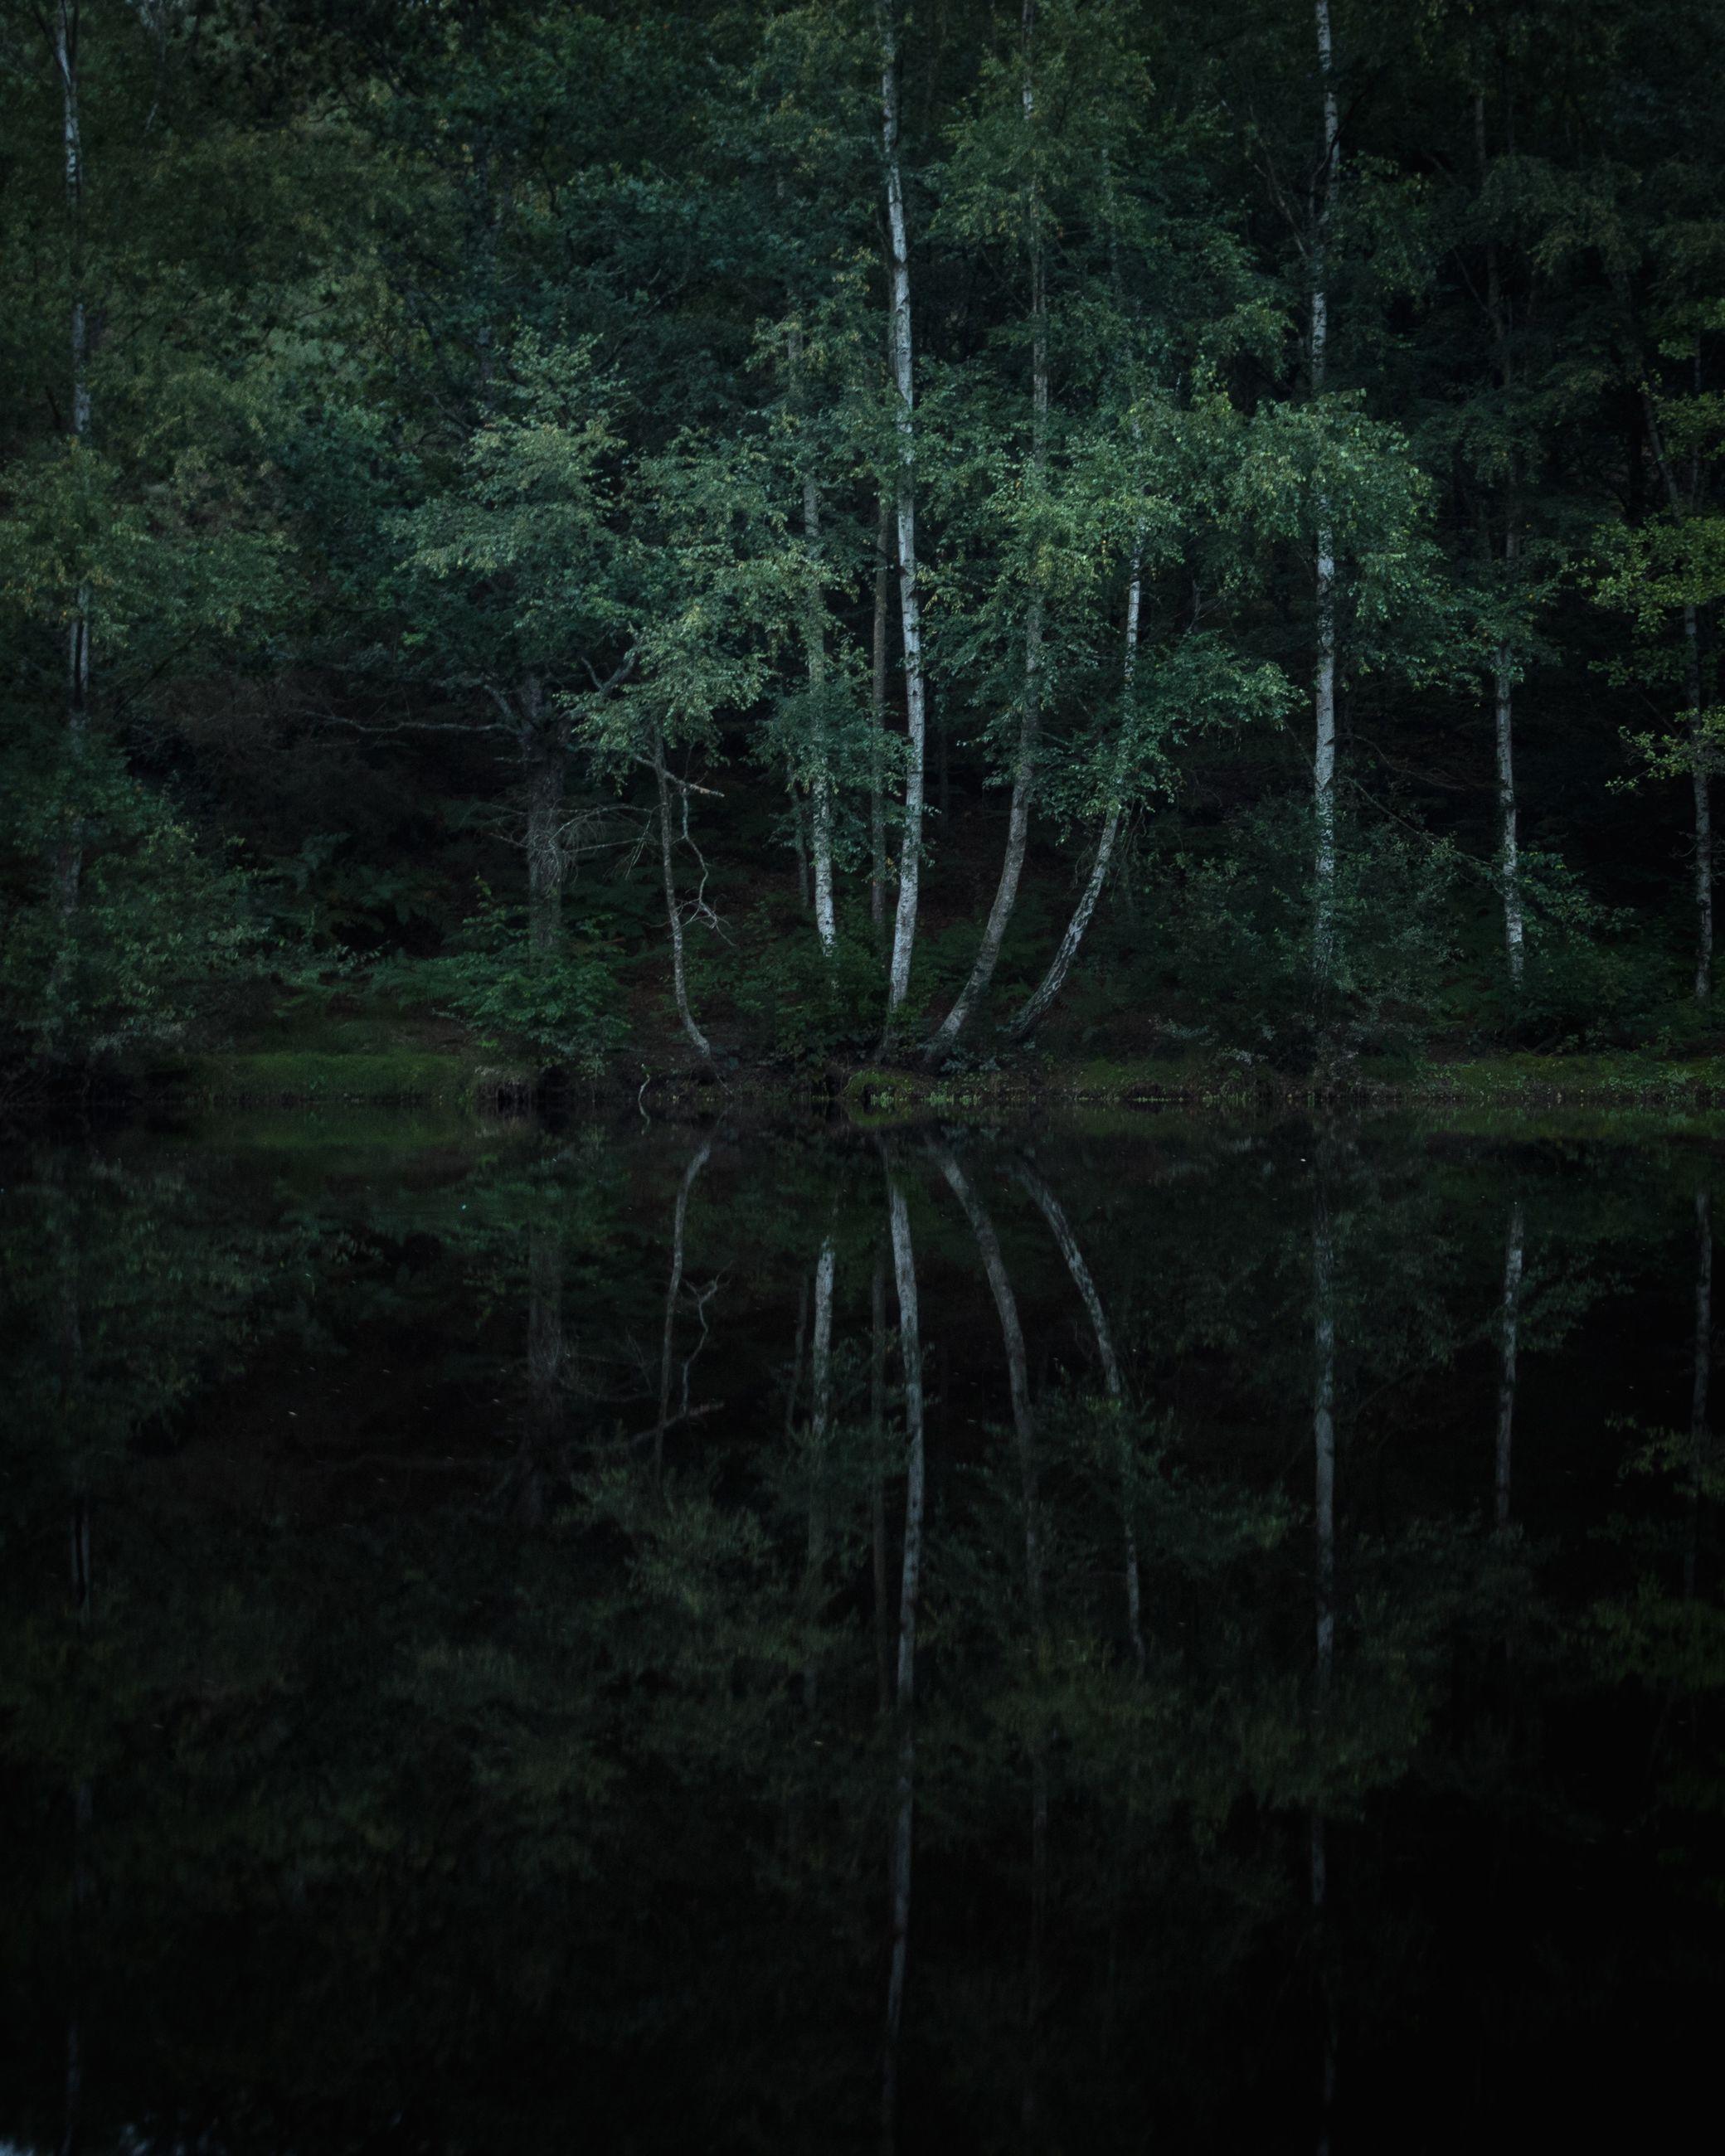 tree, plant, forest, land, no people, tranquility, water, nature, growth, beauty in nature, woodland, reflection, lake, scenics - nature, tranquil scene, non-urban scene, outdoors, day, waterfront, swamp